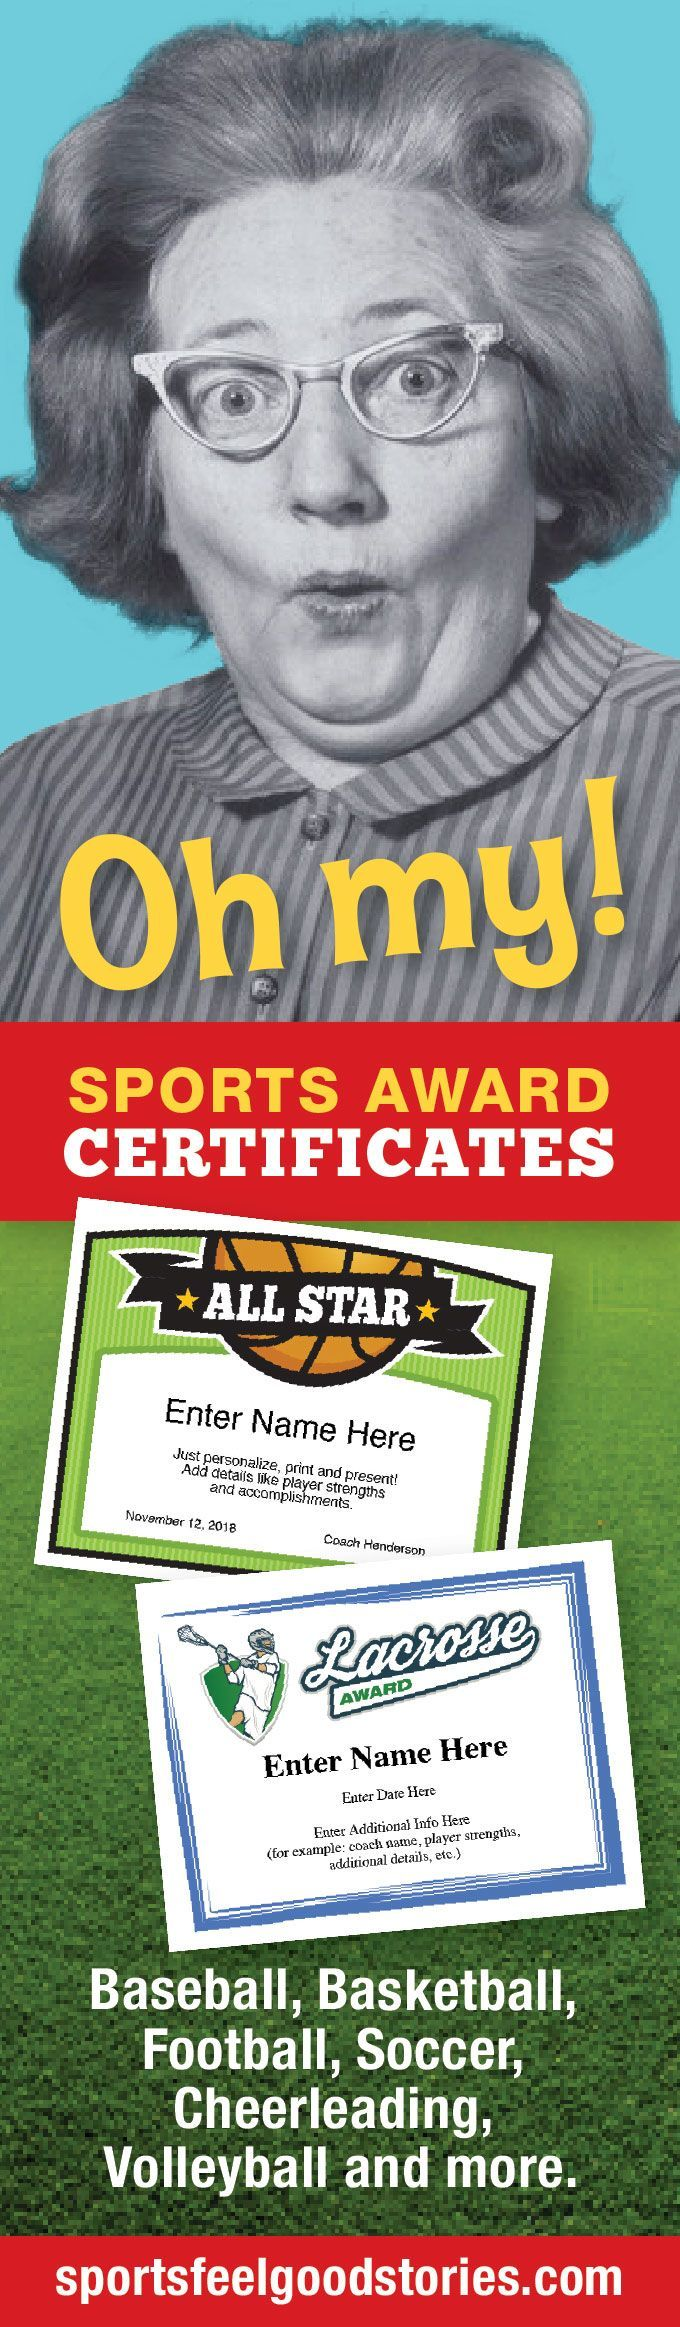 16 best sports certificate images on pinterest certificate best sports certificate images pinterest award certificates templates just personalize print and present for memorable keepsake xflitez Image collections